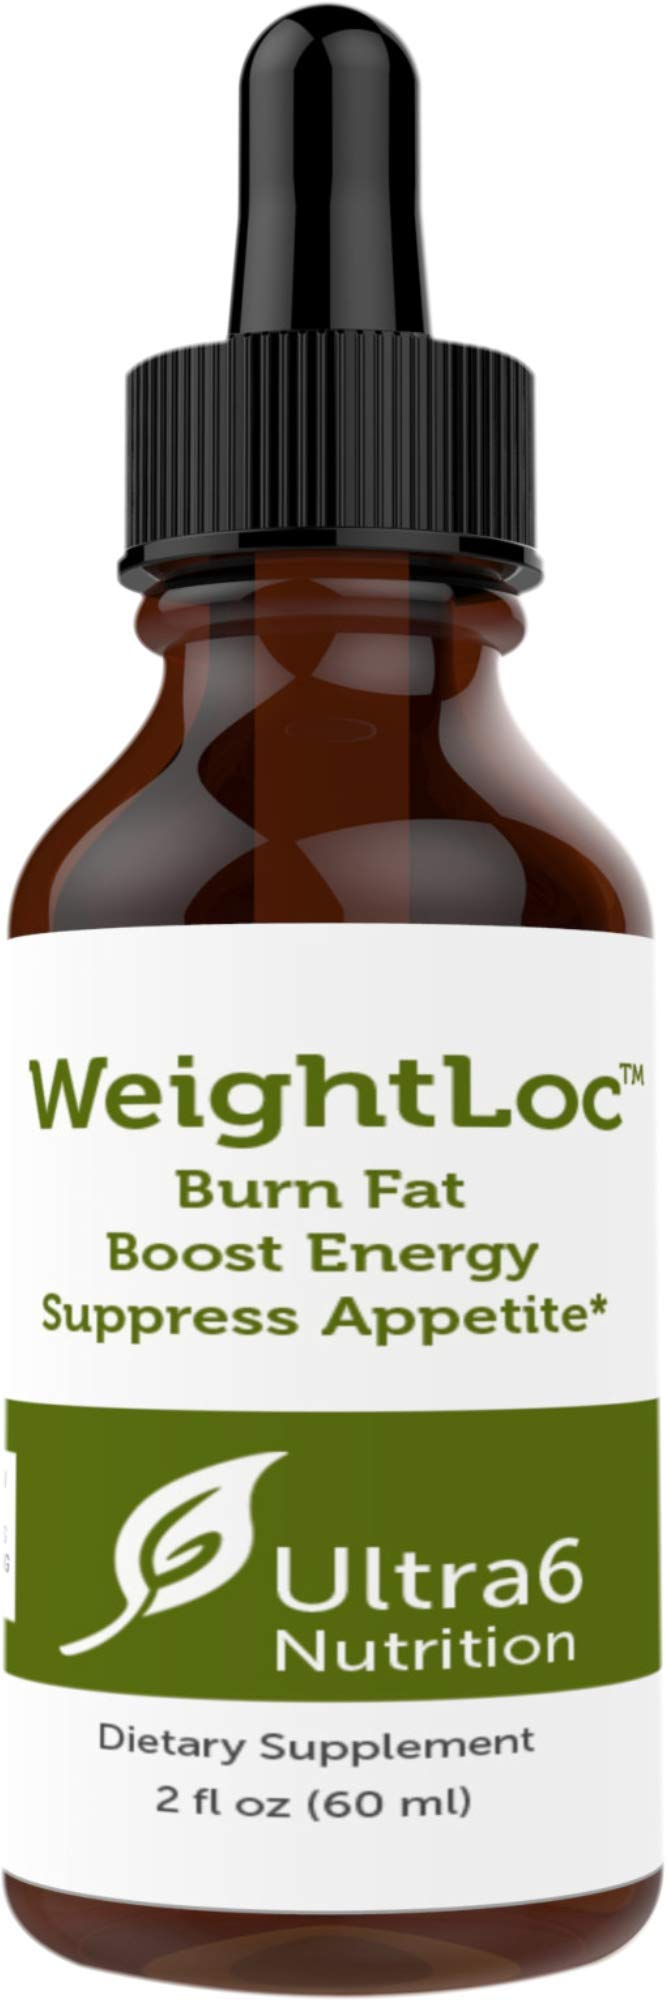 Weightloc Drops by Ultra6 Nutrition - Concentrated Liquid Energy - Enhance Mood and Suppress Appetite and Fat Burner by Ultra6 Nutrition